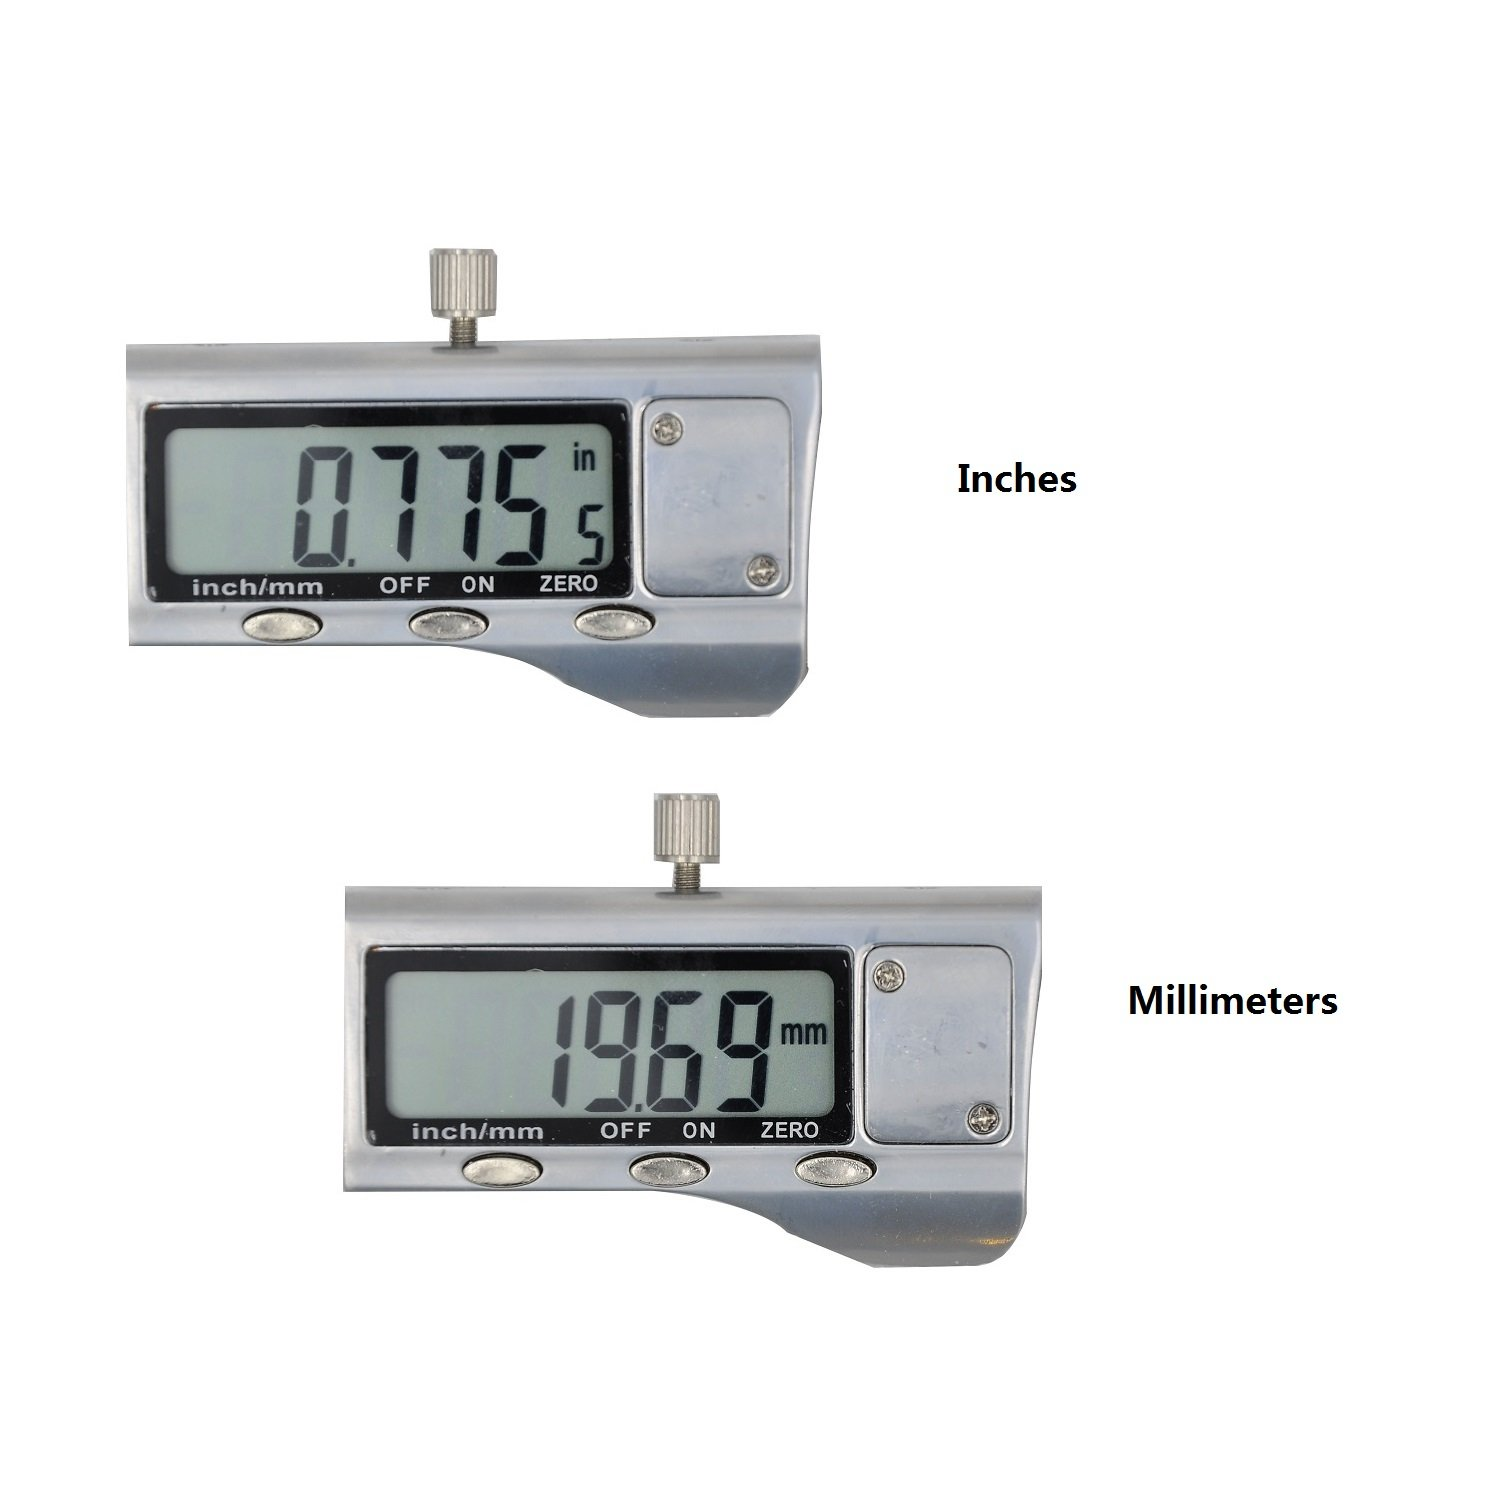 Electronic Digital Caliper - Bovini Caliper Measuring Tool in Inches & Millimeters Conversion 0-6 Inch/150 mm Stainless Steel Auto off Measuring Tool For Dimensions, Thickness, Depth, Diameter by Bovini (Image #5)